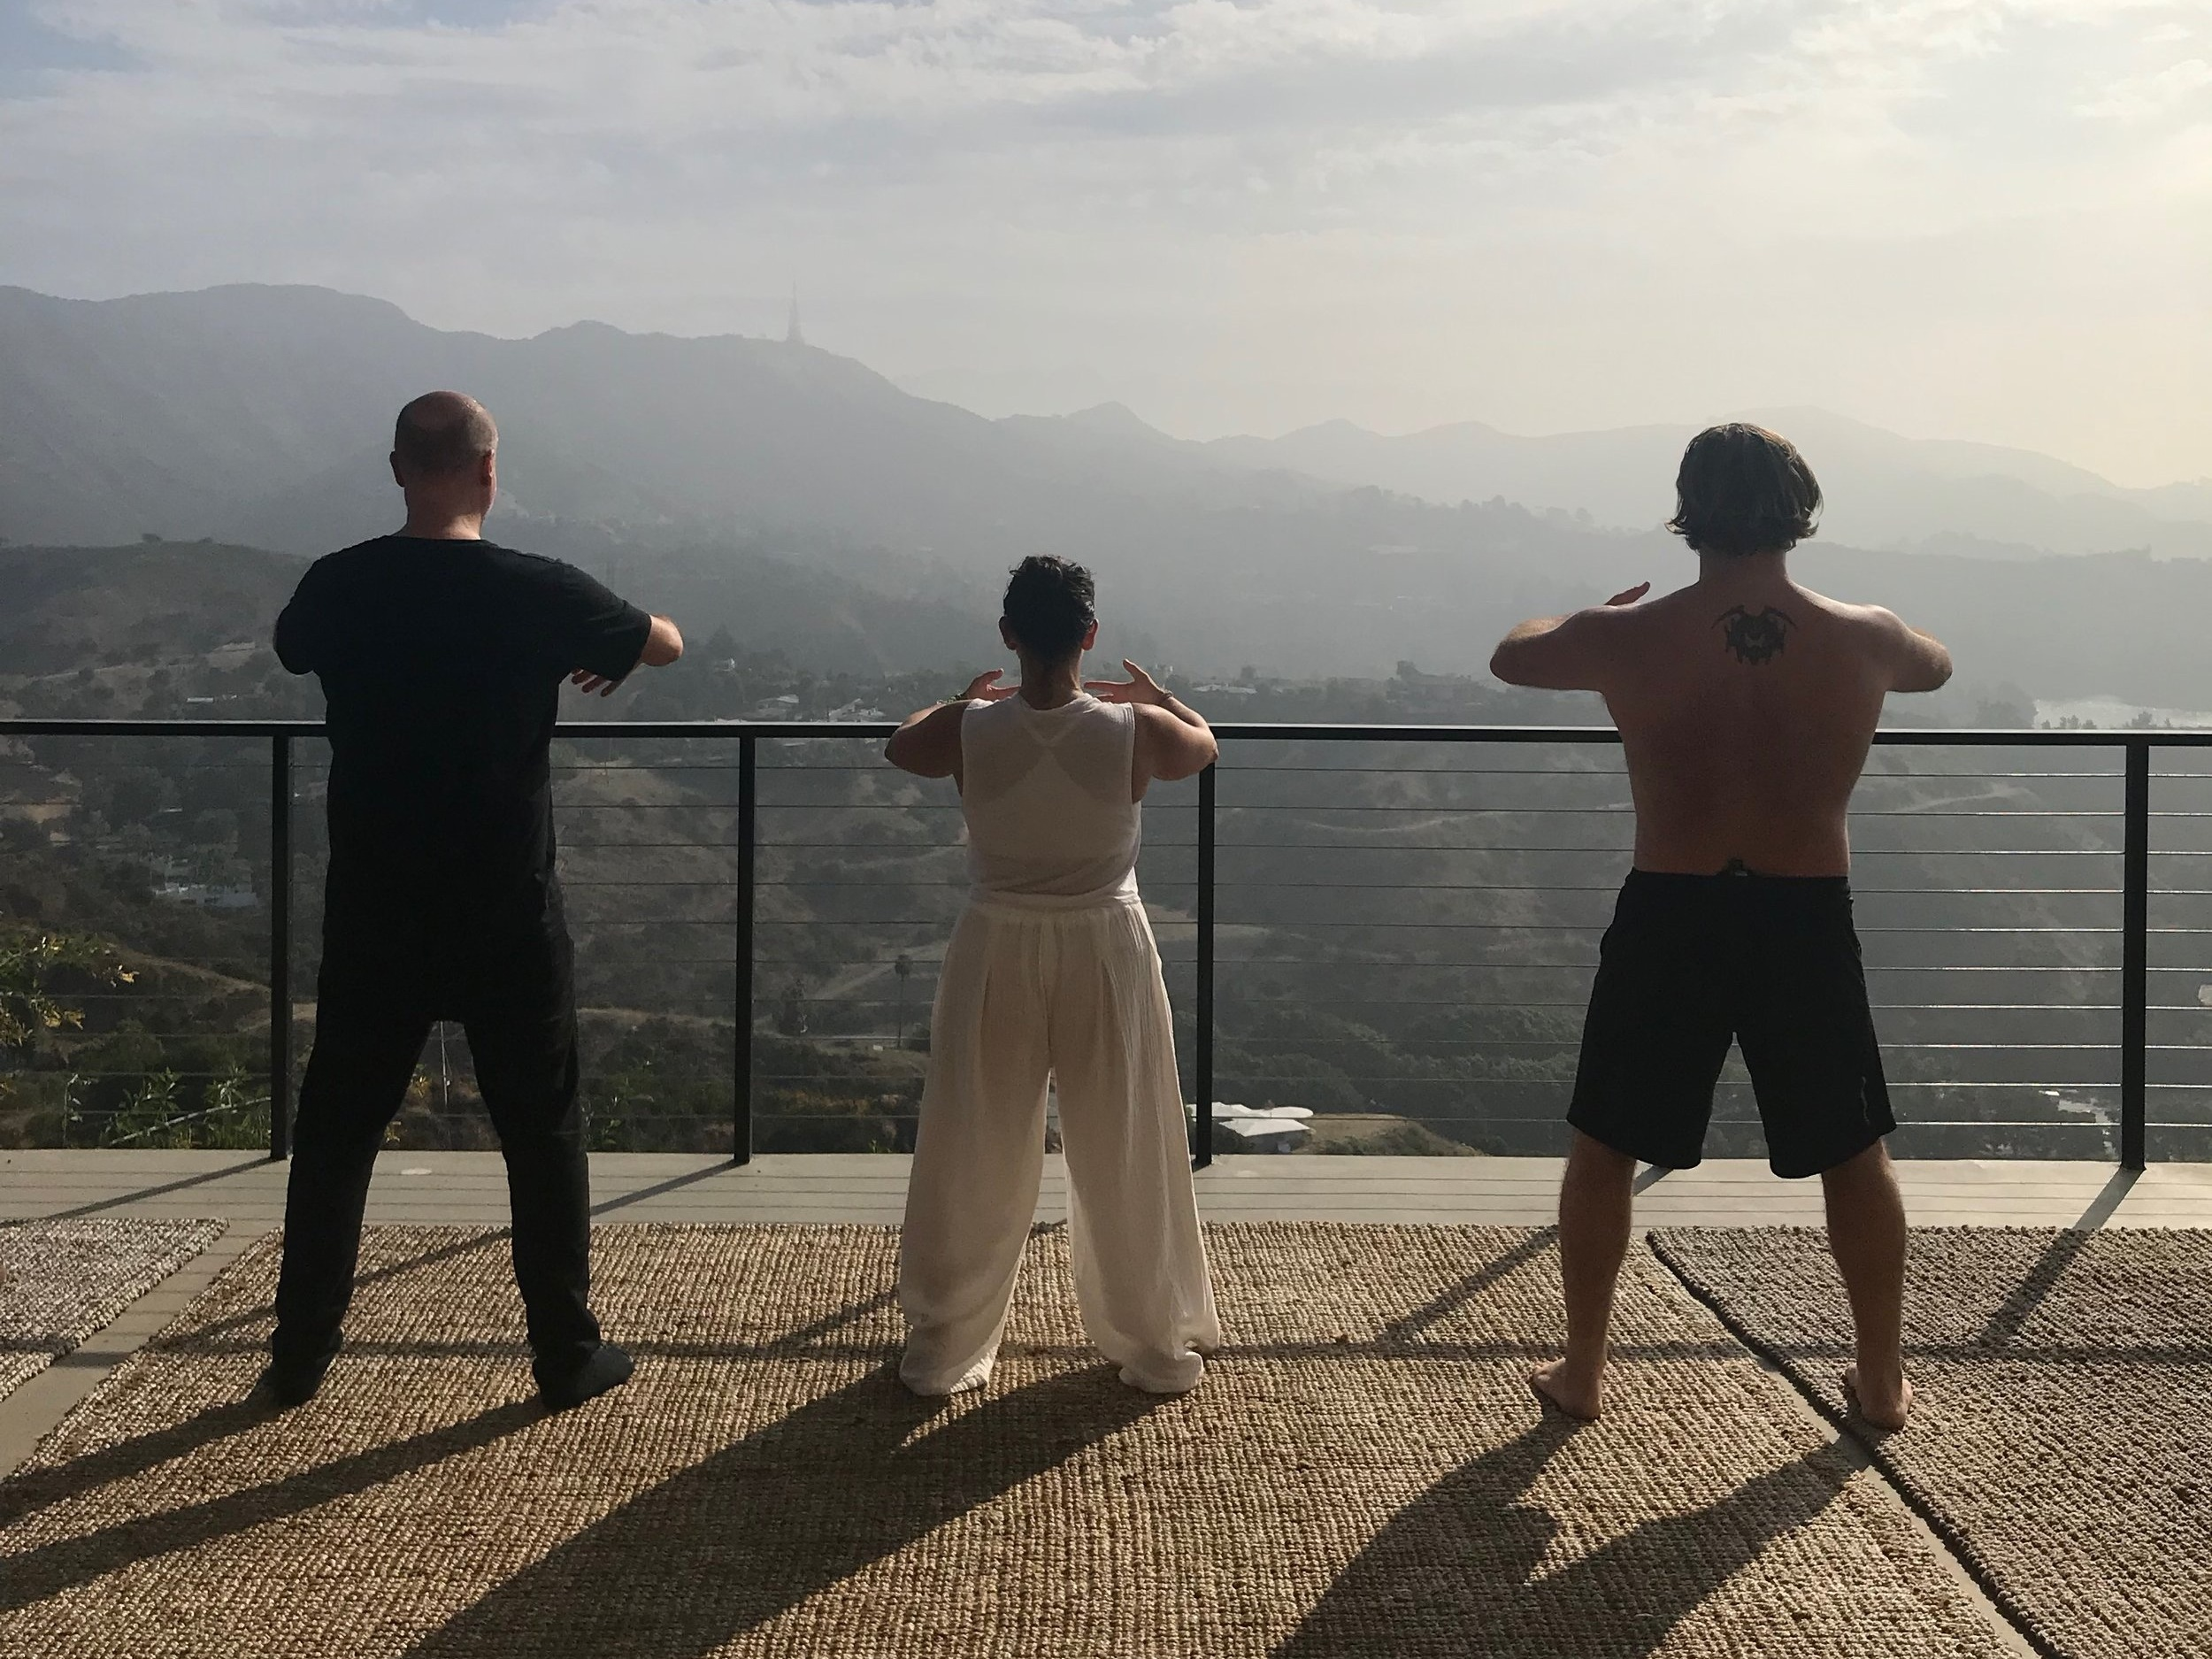 Sunrise Qi Gong - Every Wednesday from 7am - 8am, we invite you to regulate your nervous system by purging and tonifying through movement. What a way to start the day!Suggested donation: $10All levels welcome. Join here.